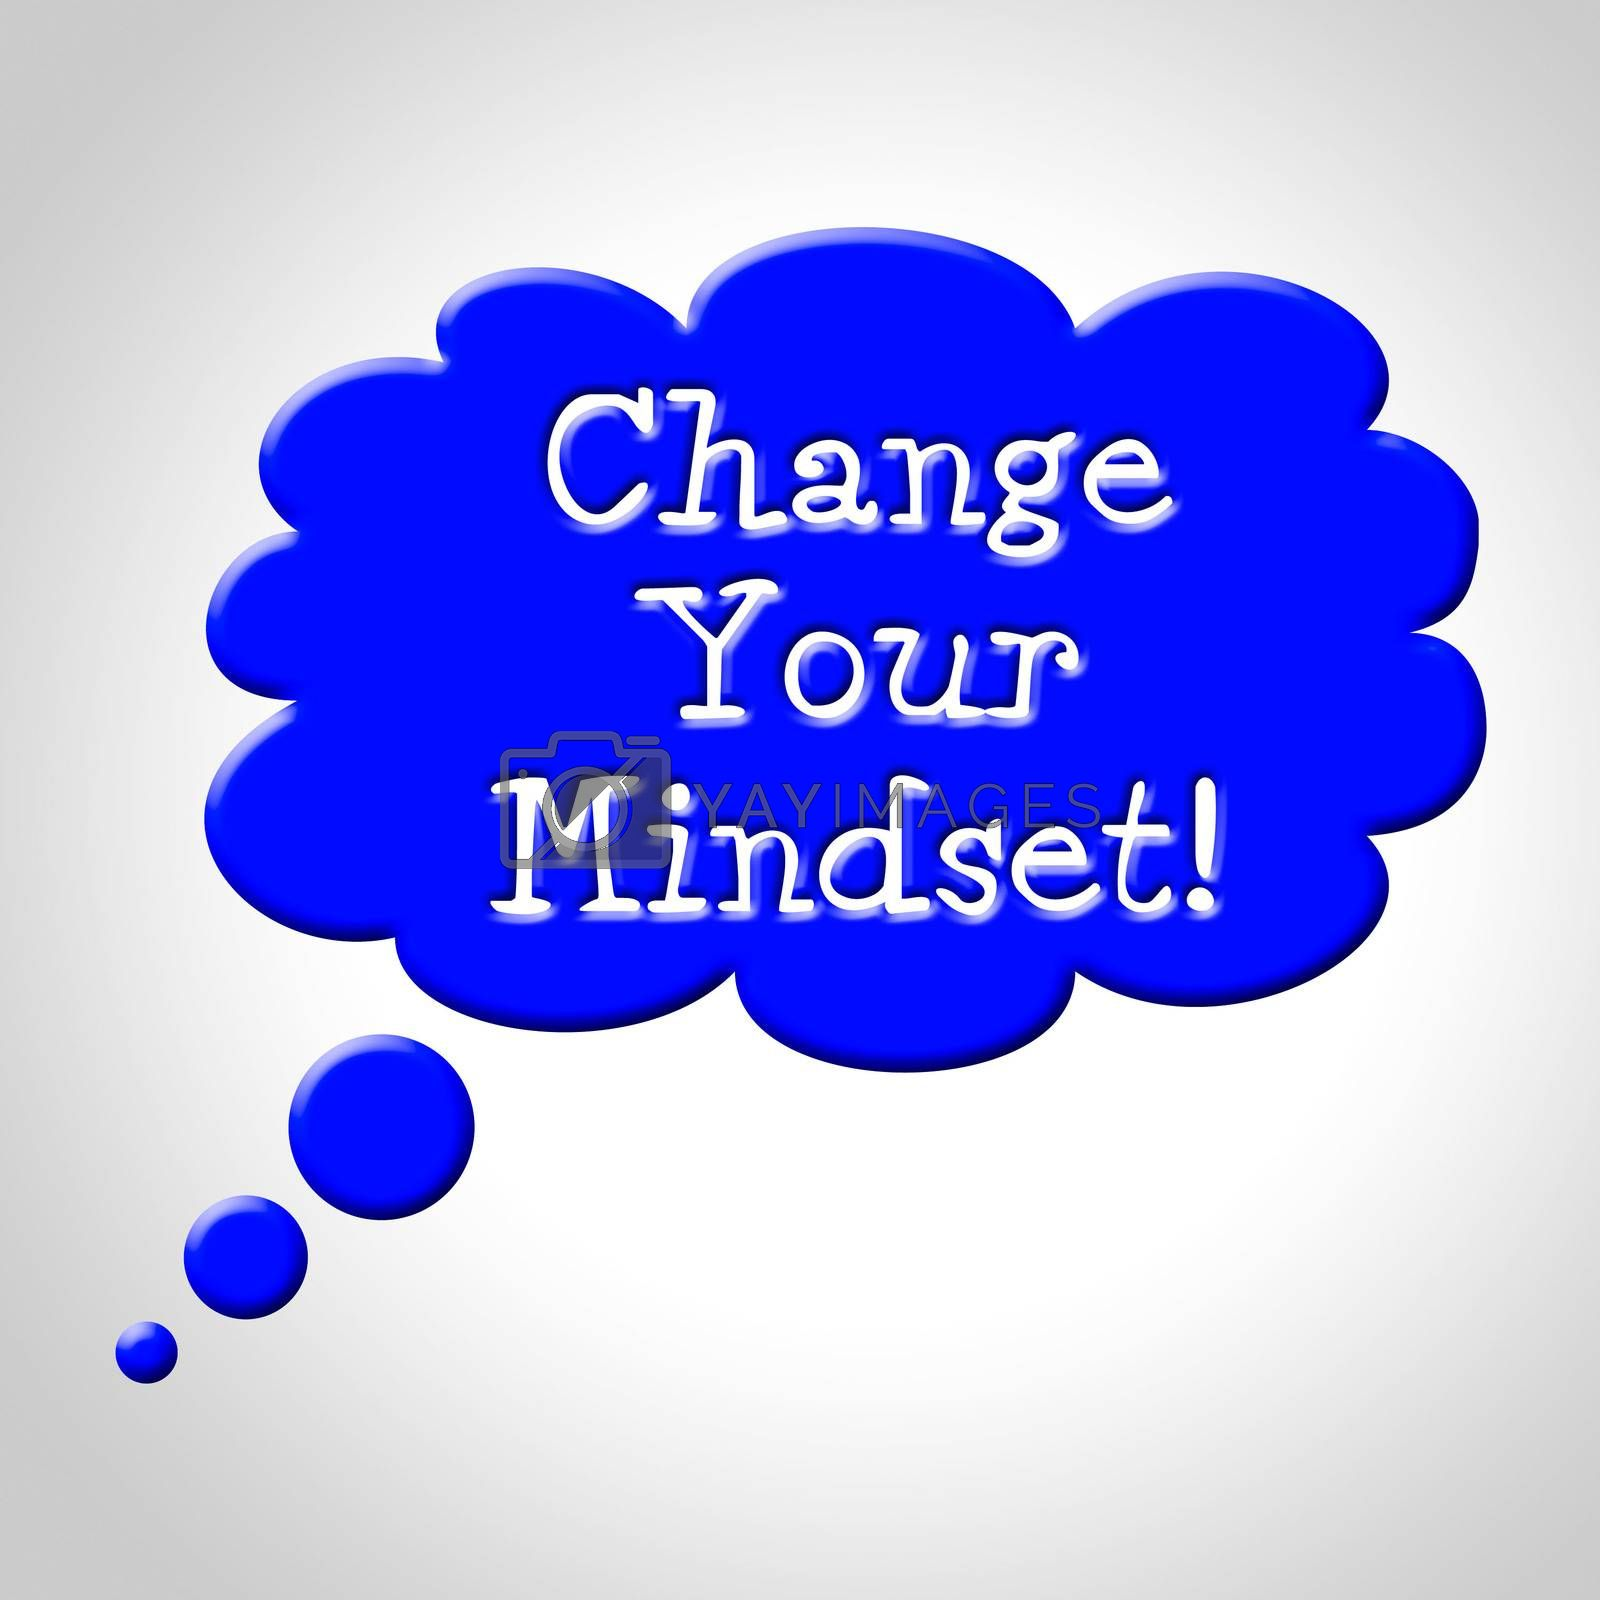 Change Your Mindset Means Think About It And Reflecting by stuartmiles